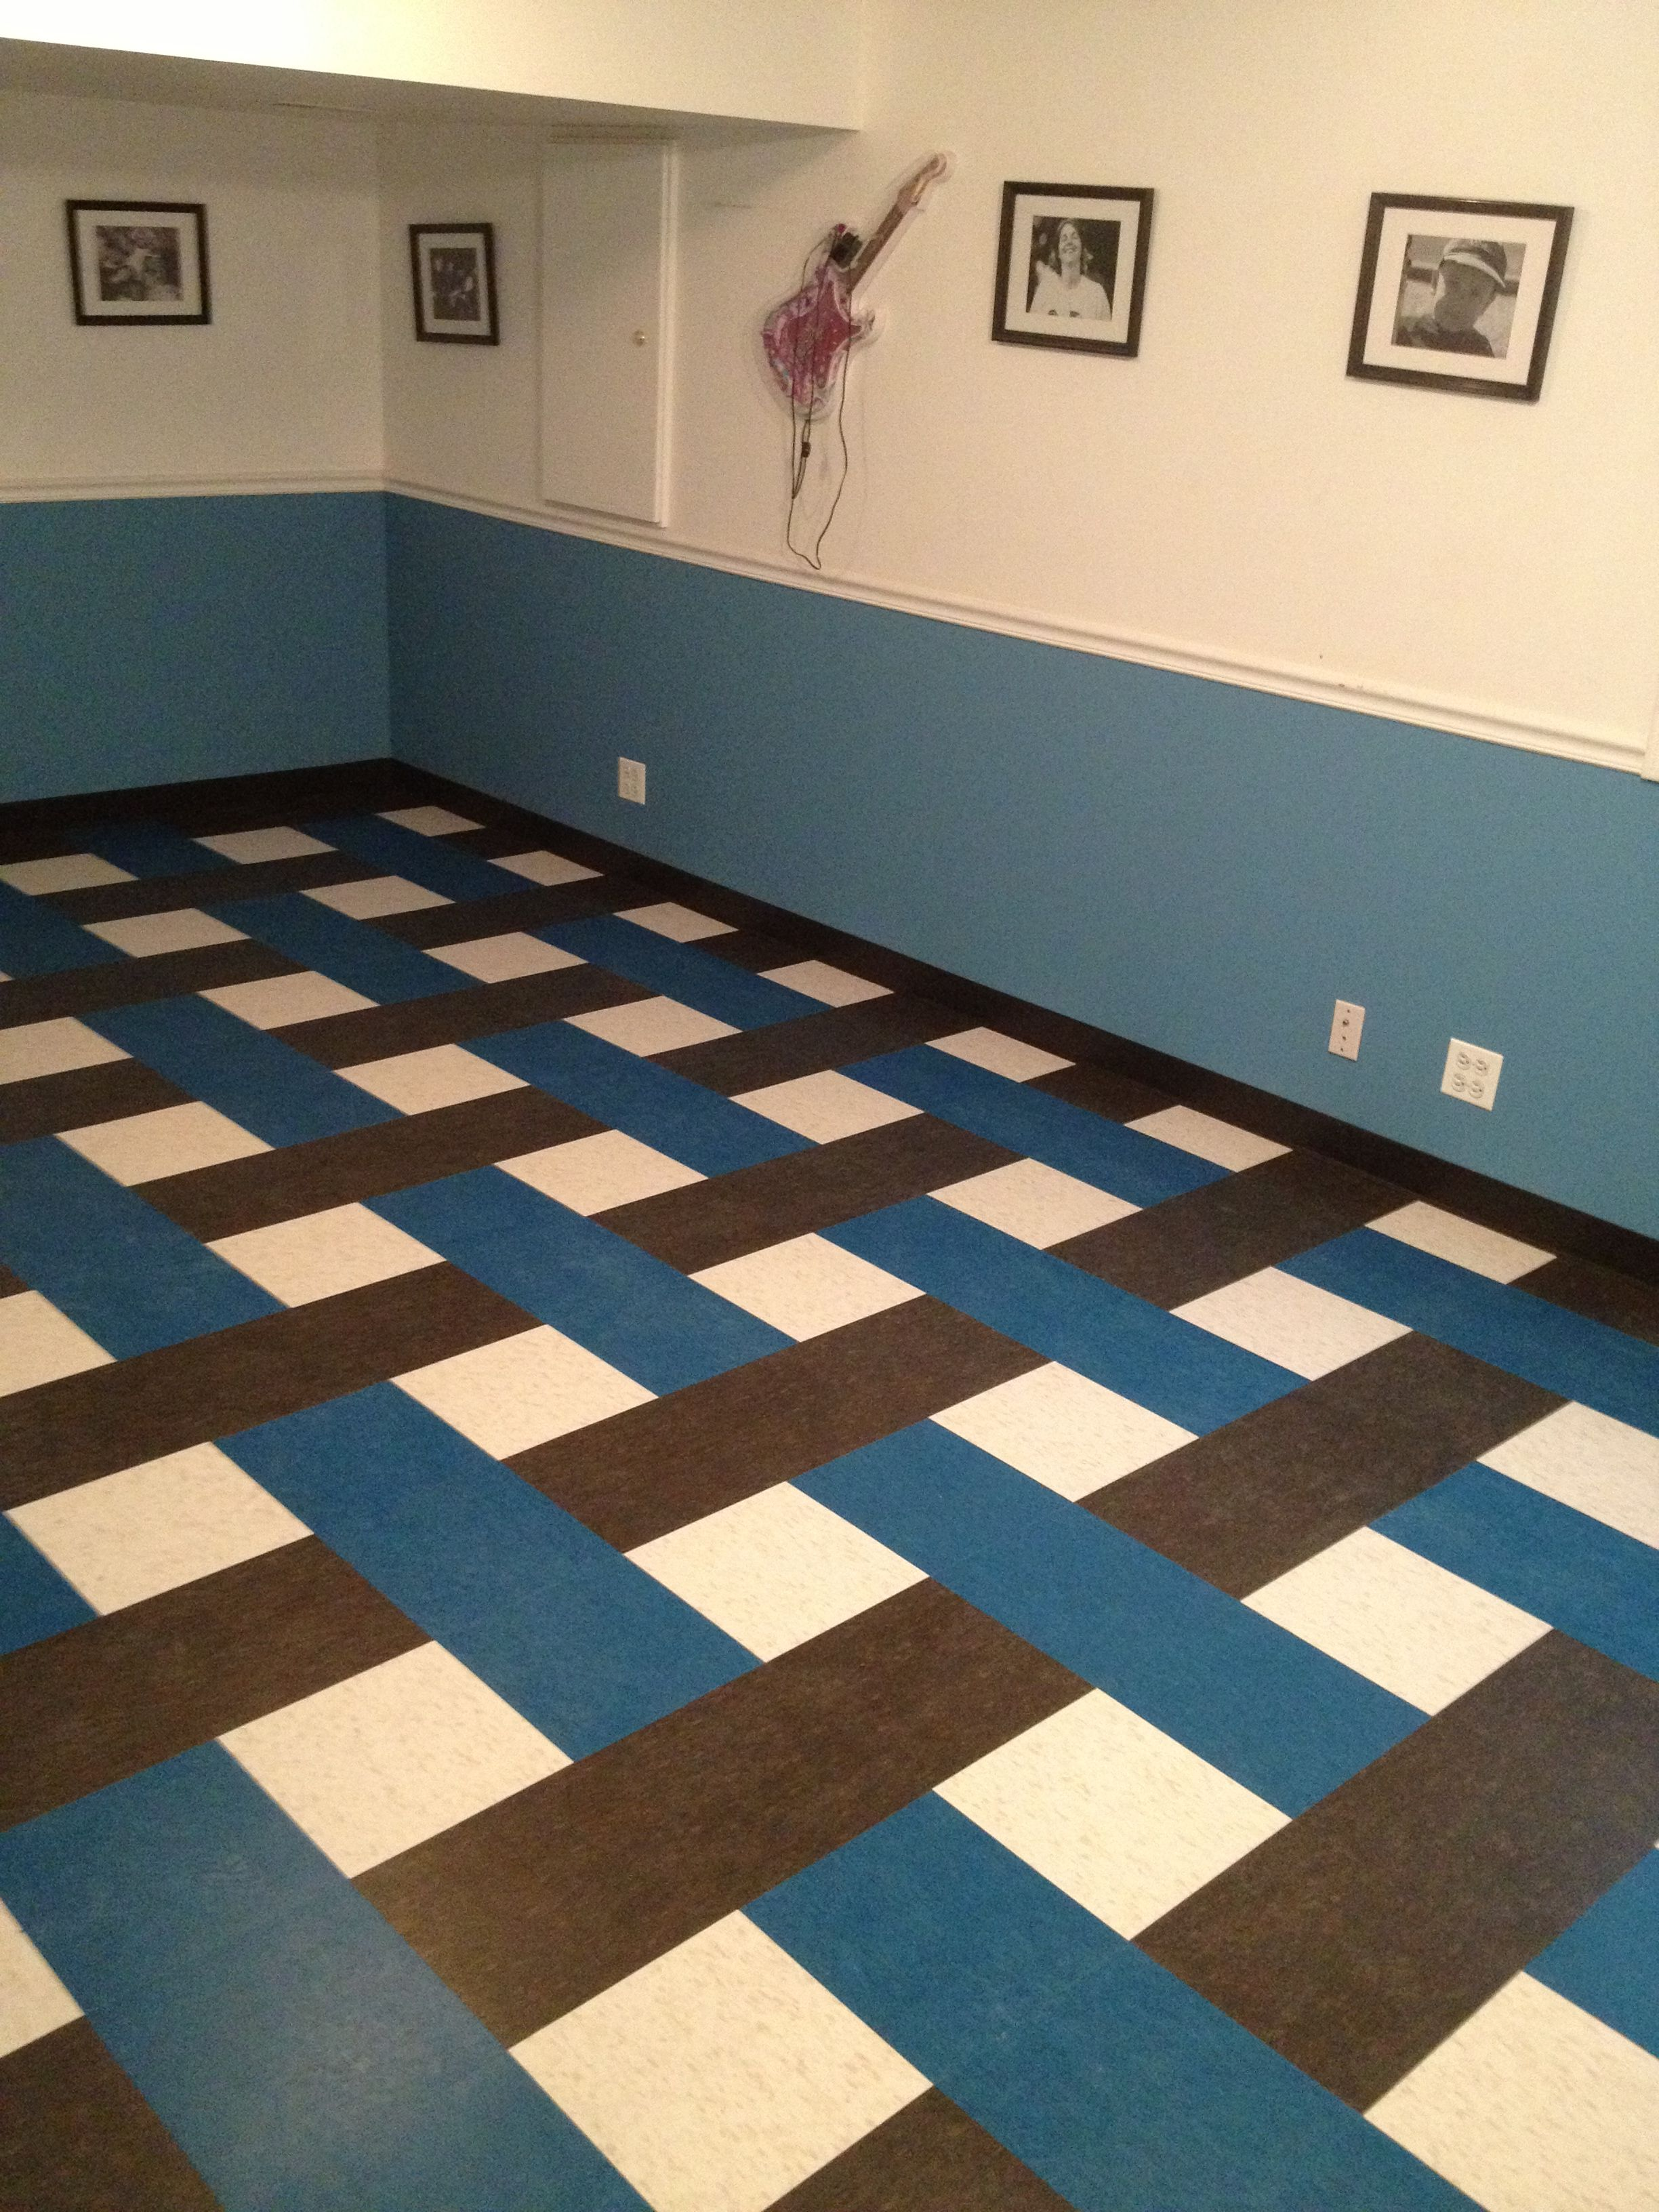 VCT Vinyl Composite Tiles In A Basketweave Pattern Its Very Fun - Basket weave vinyl flooring